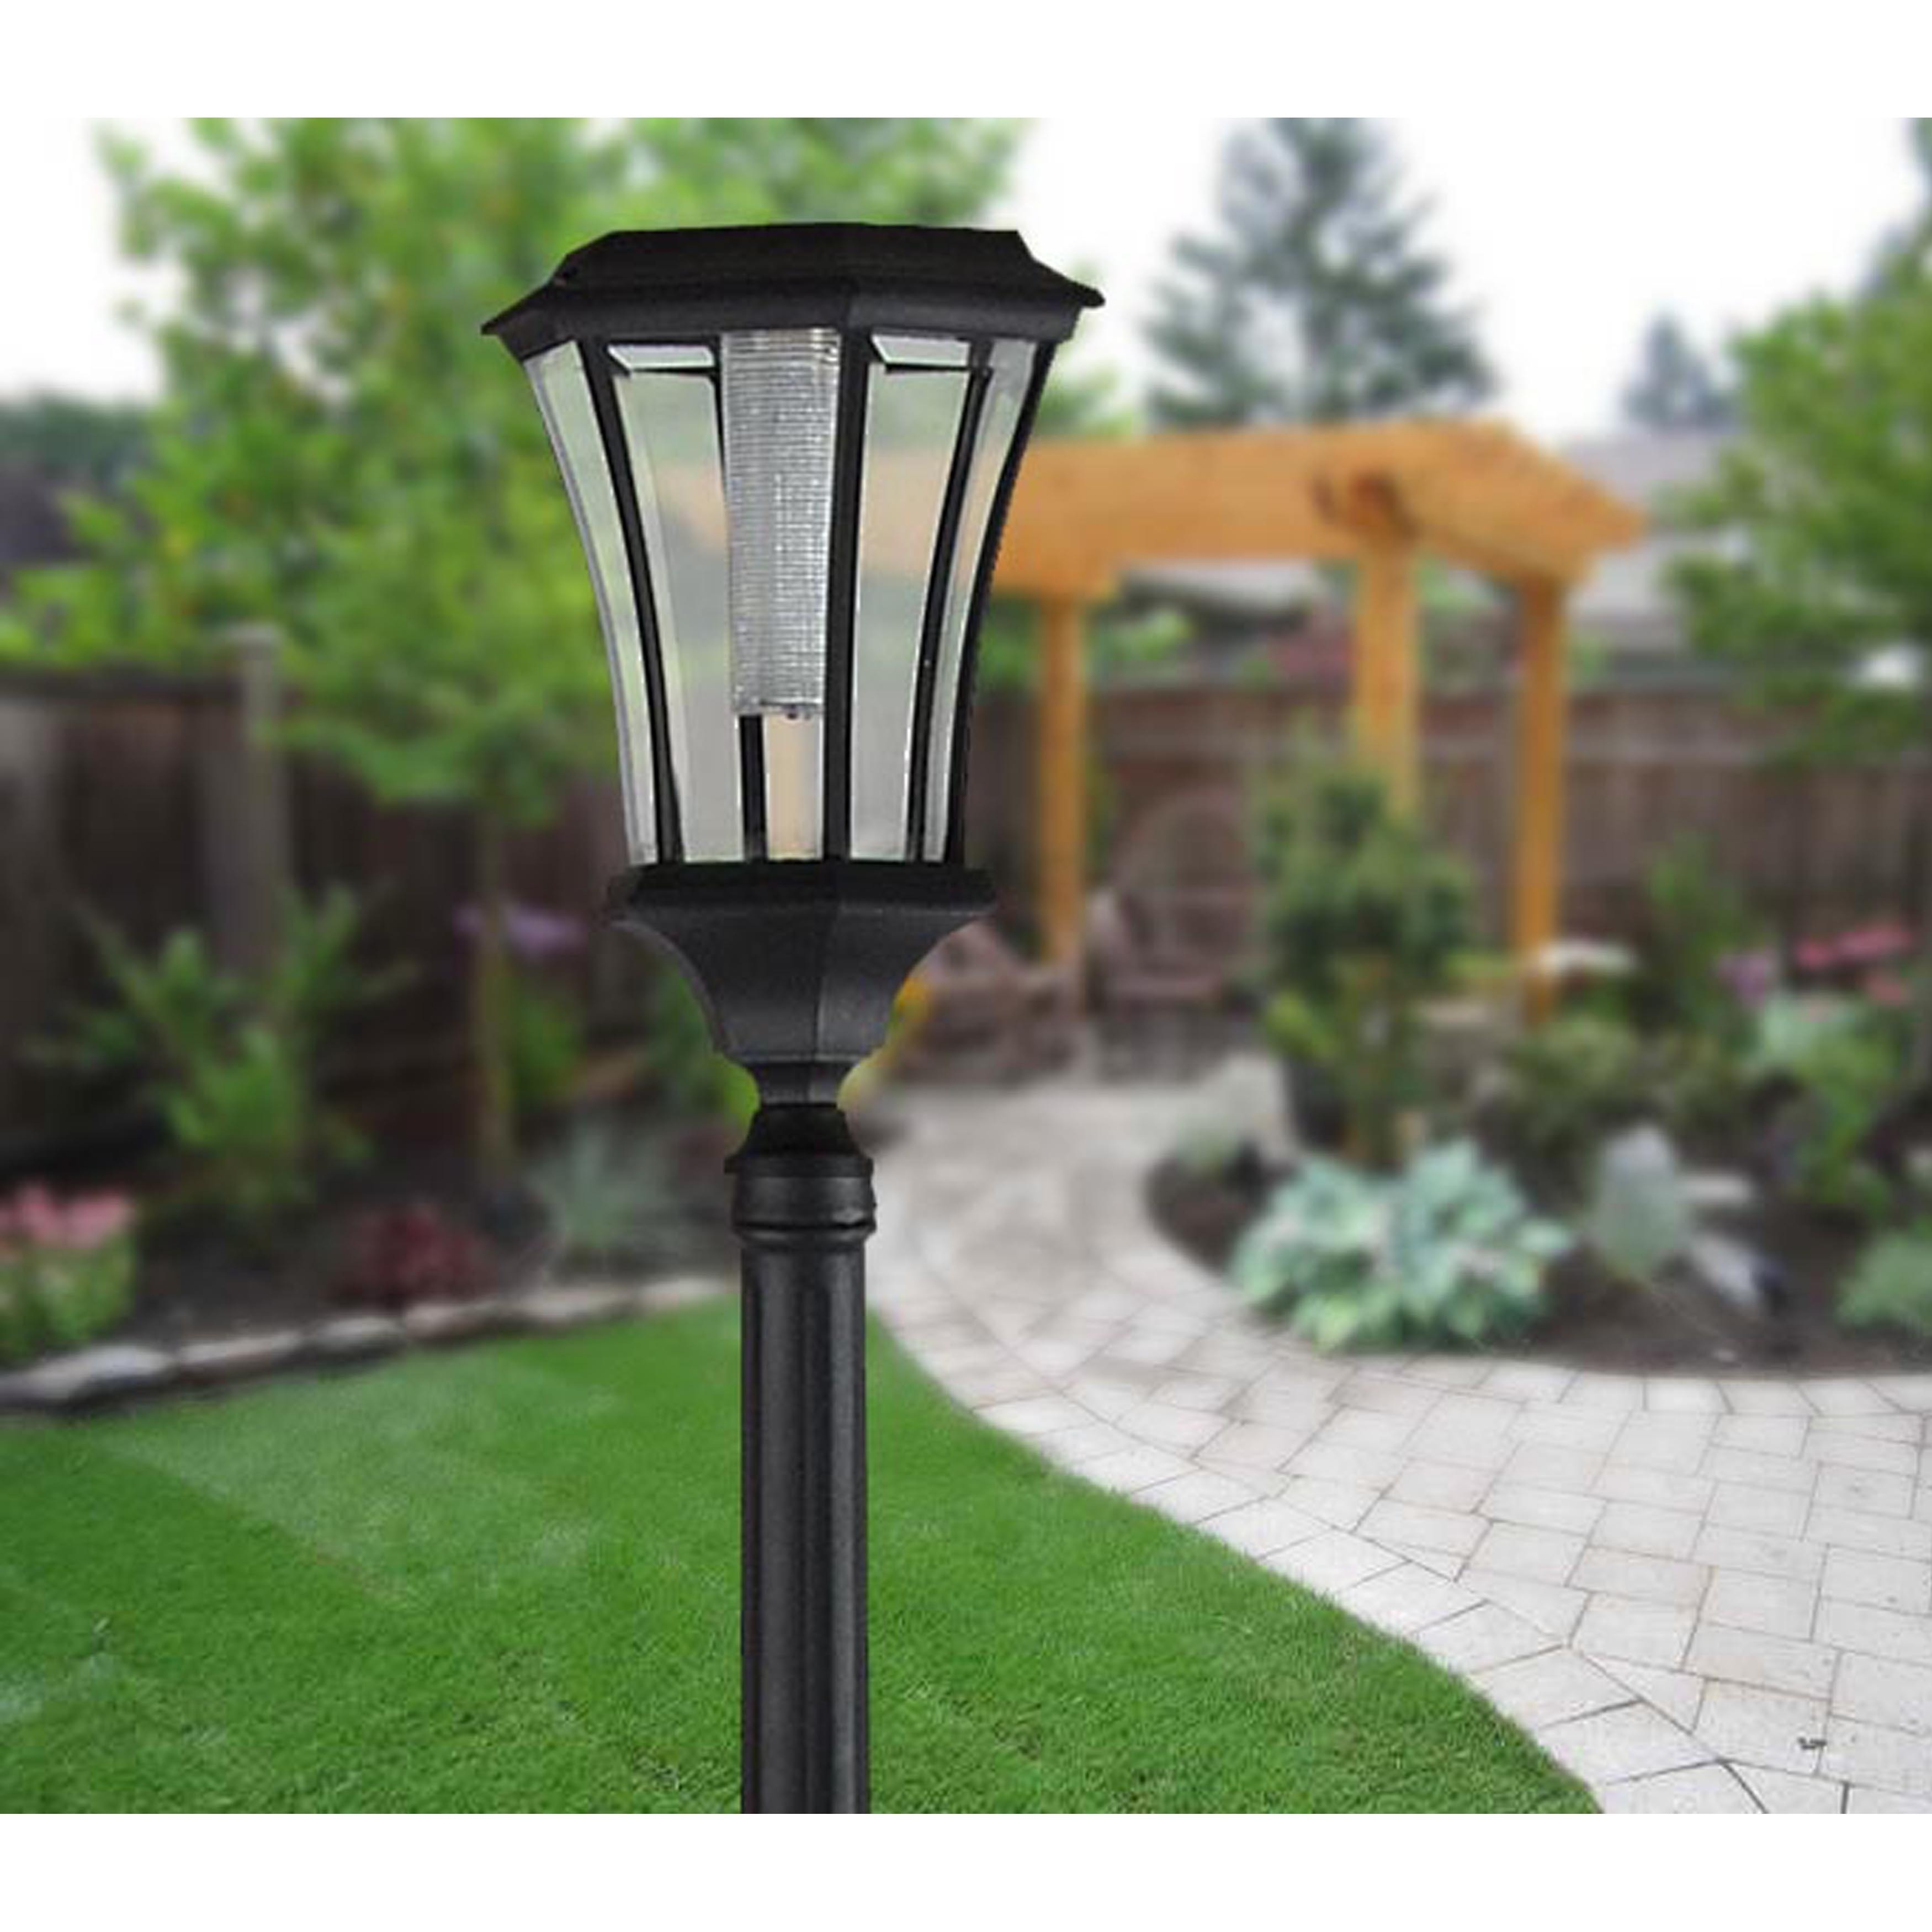 tall light product pole post white inch gamasonic lighting outdoor solar aluminum cast lamp